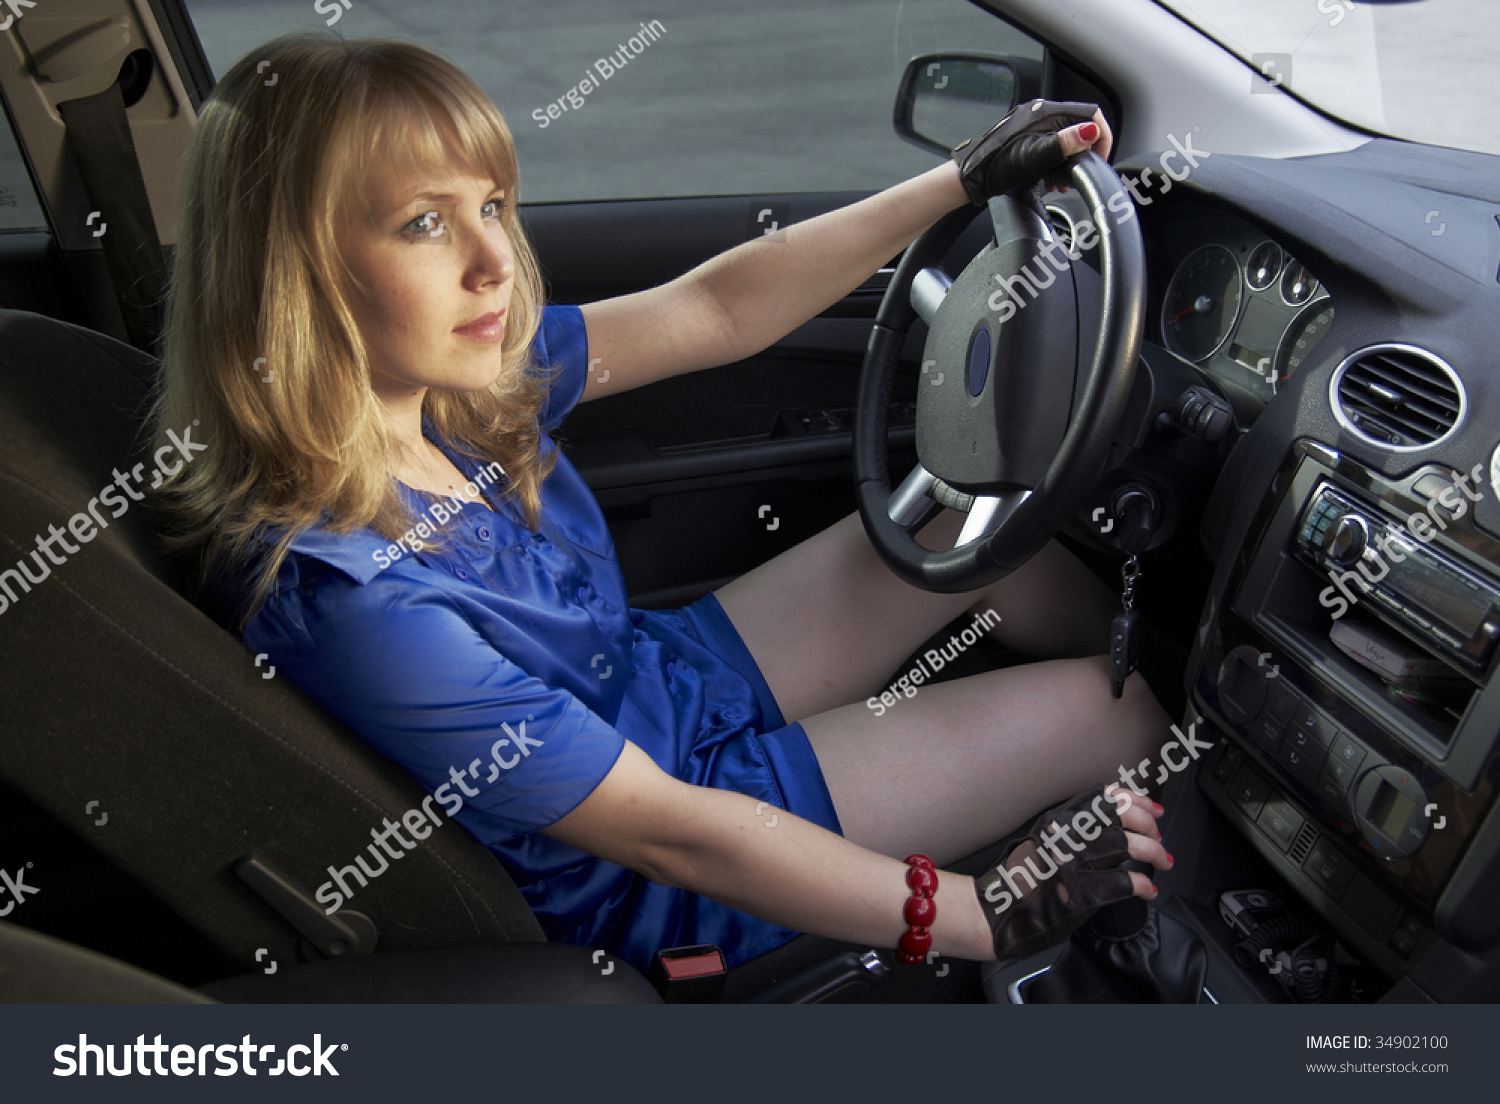 Driving gloves girl - Driving Girl With Hand In Glove On Speed Lever